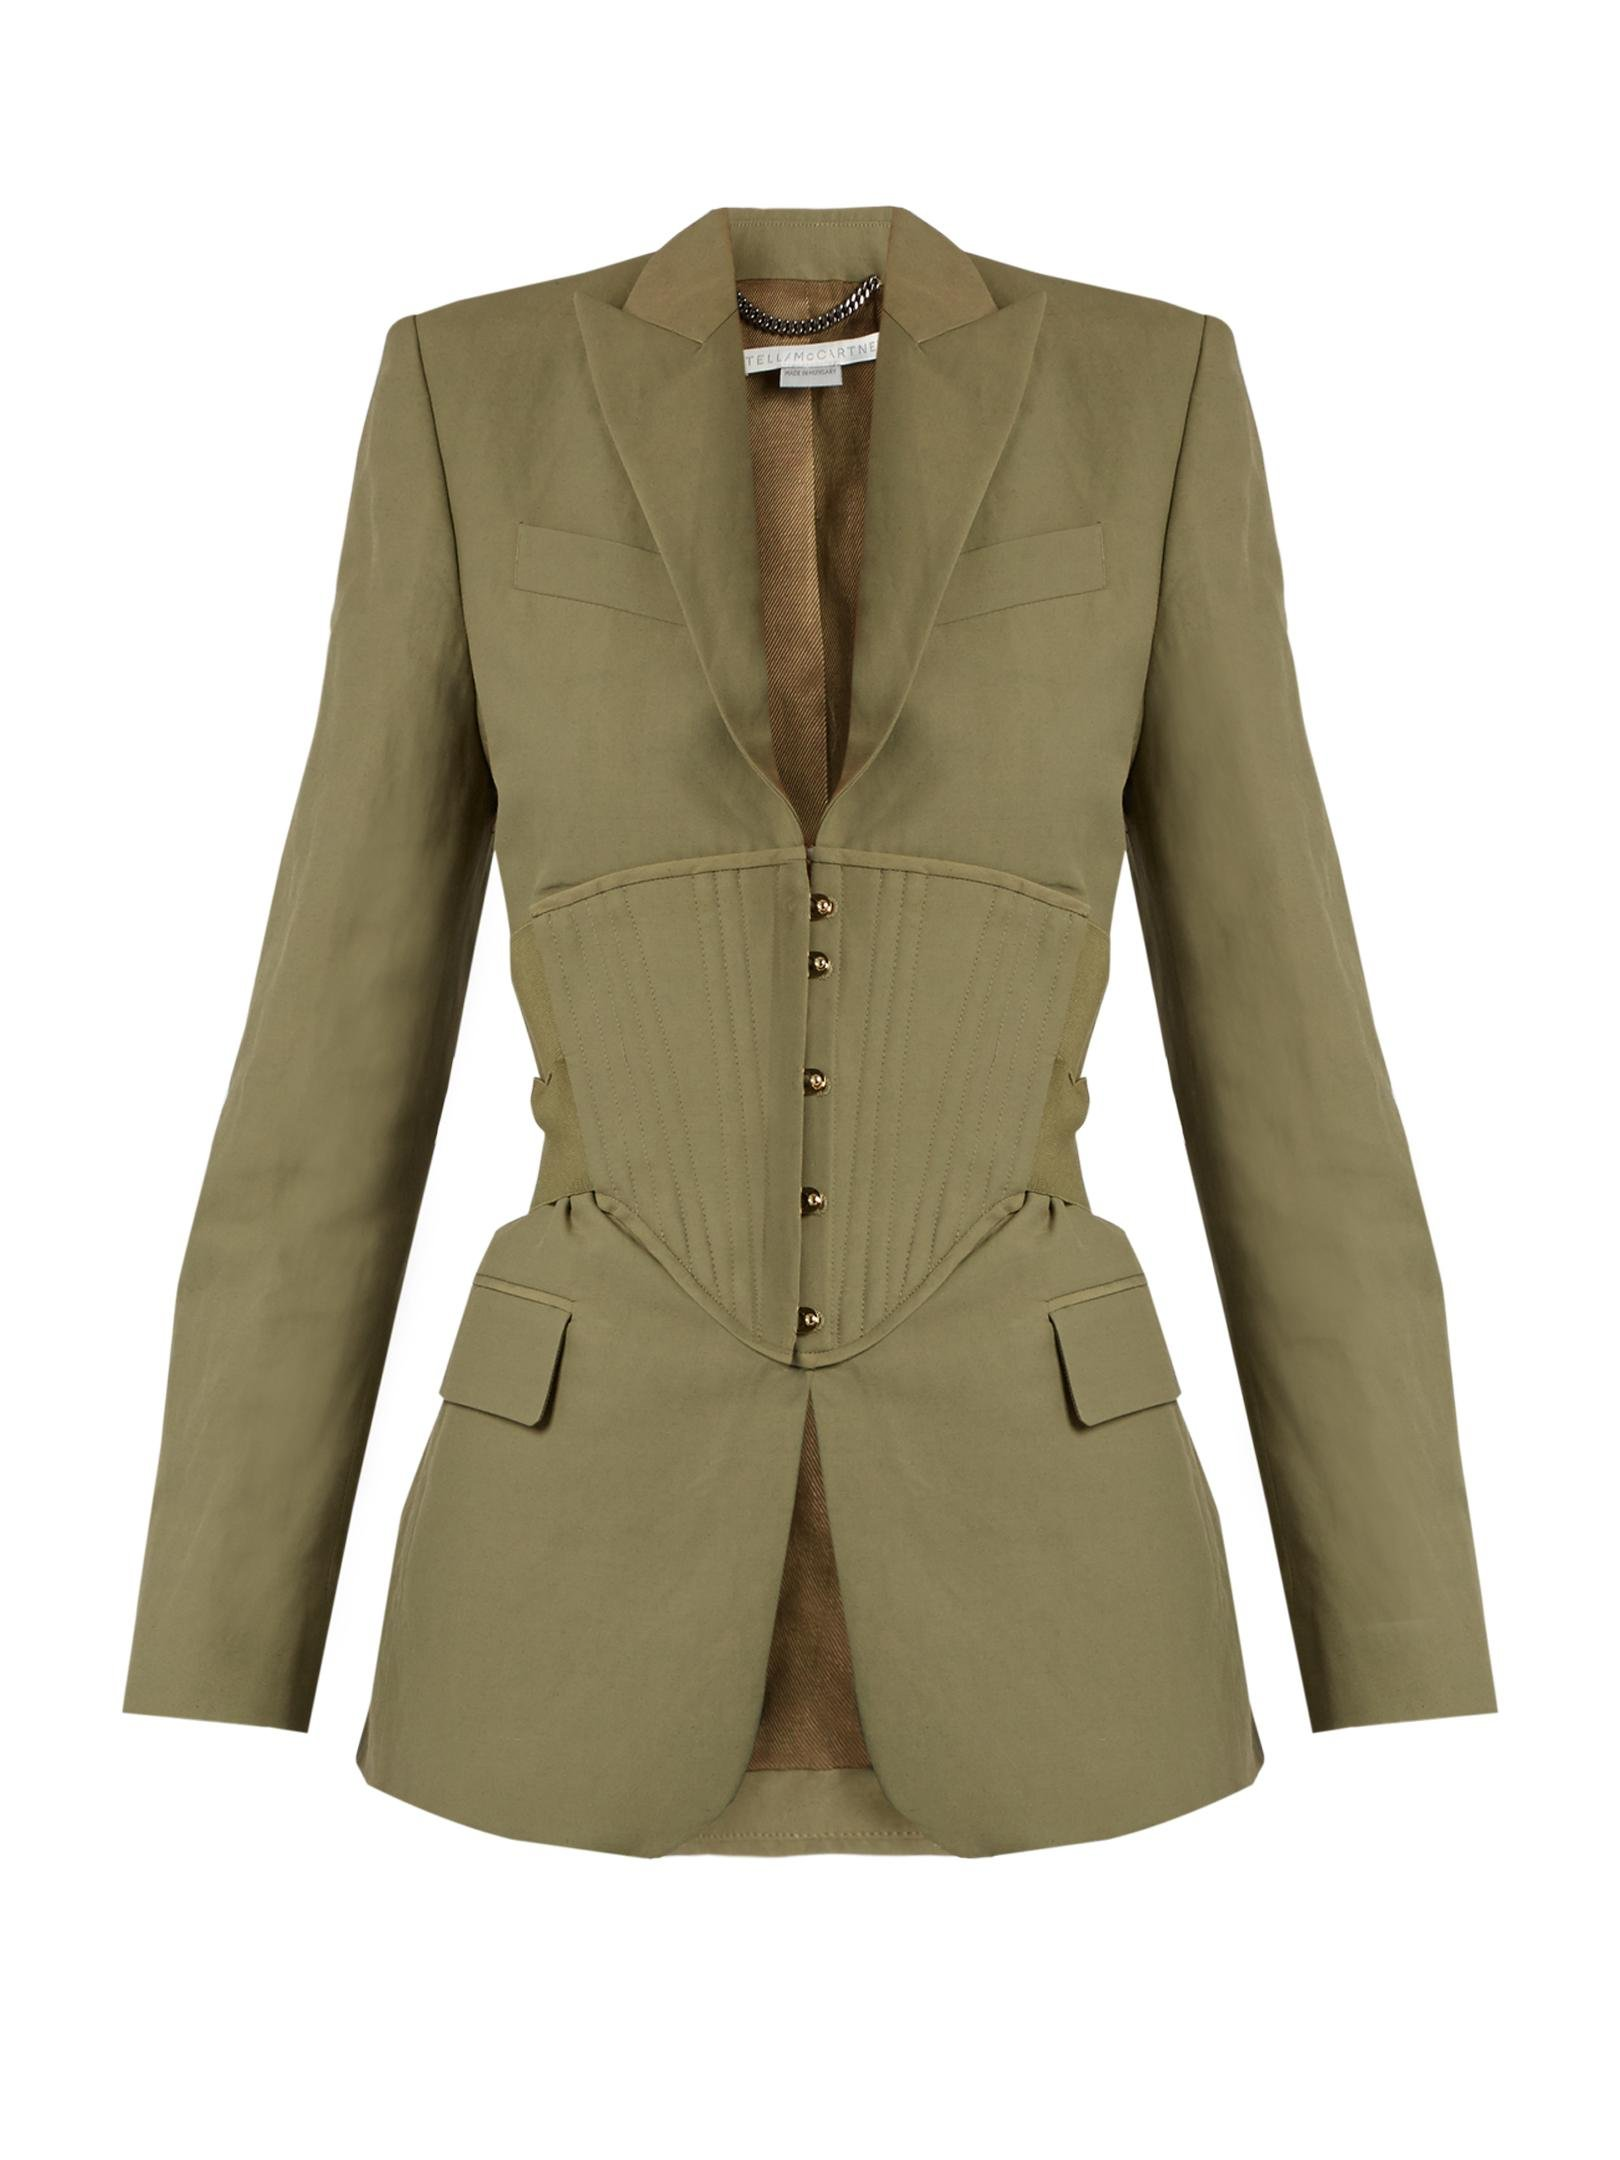 efb1ec715a8 Stella Mccartney Peak-lapel Corset-panel Jacket - Lyst